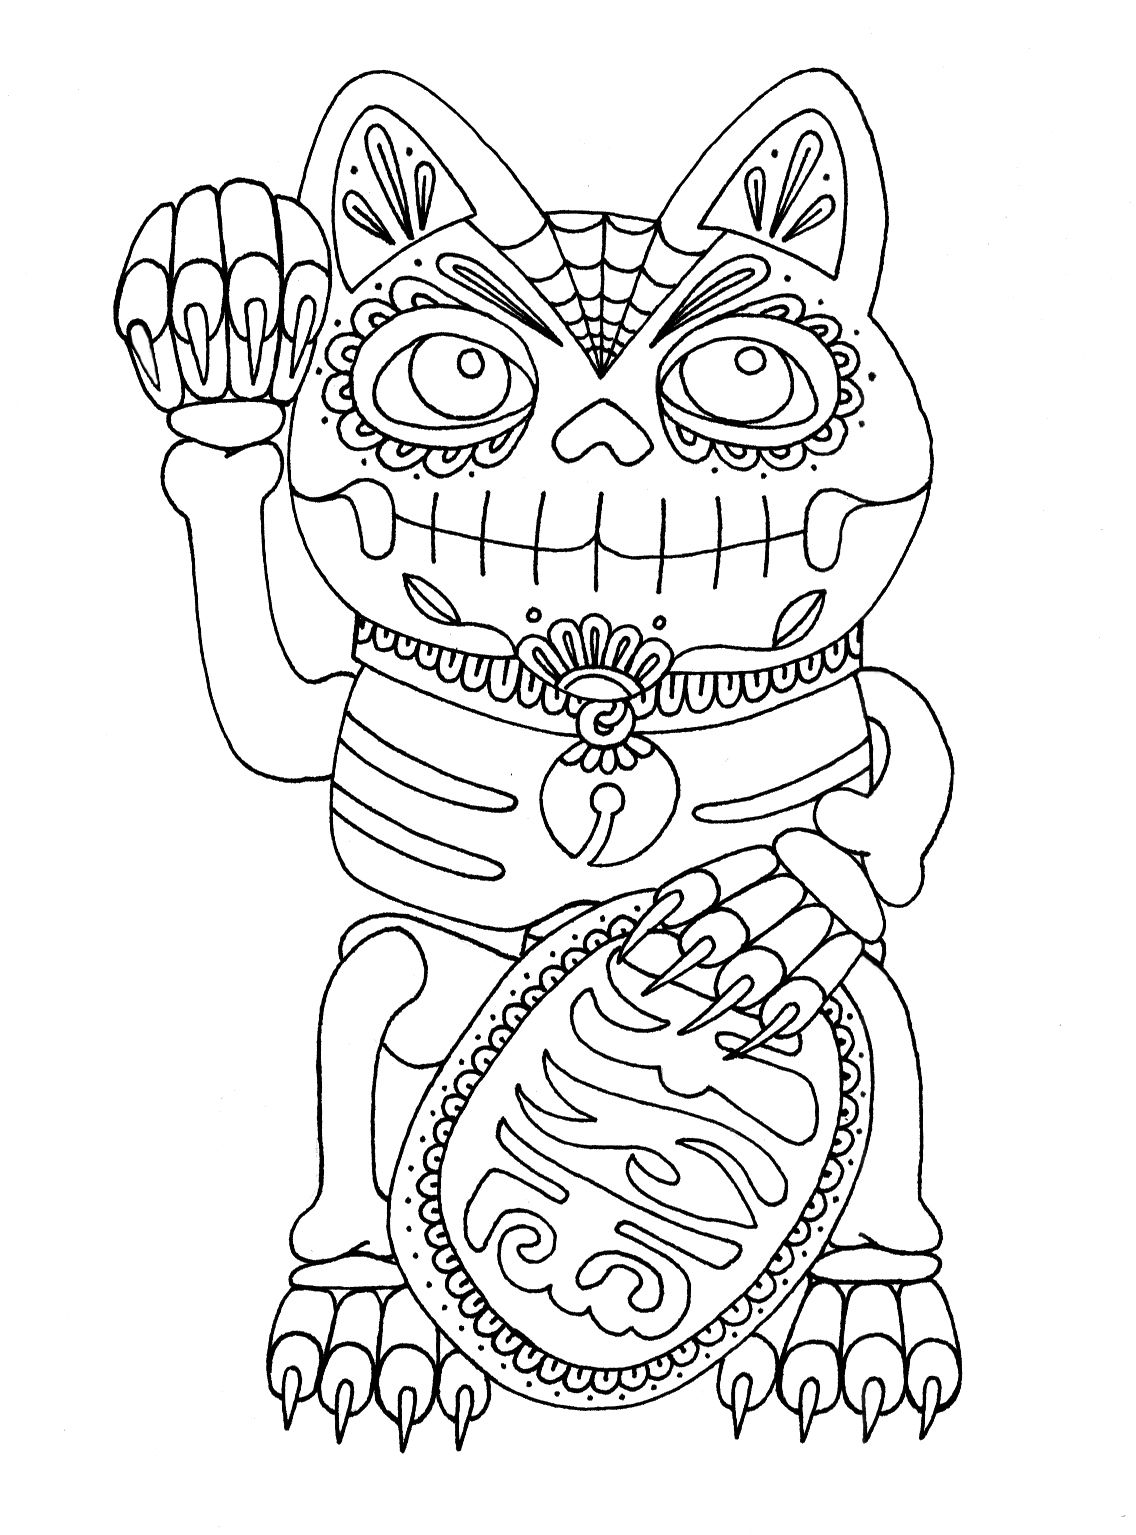 Maneki Neko Lucky Cat Painting Wenchkin S Coloring Pages Dia